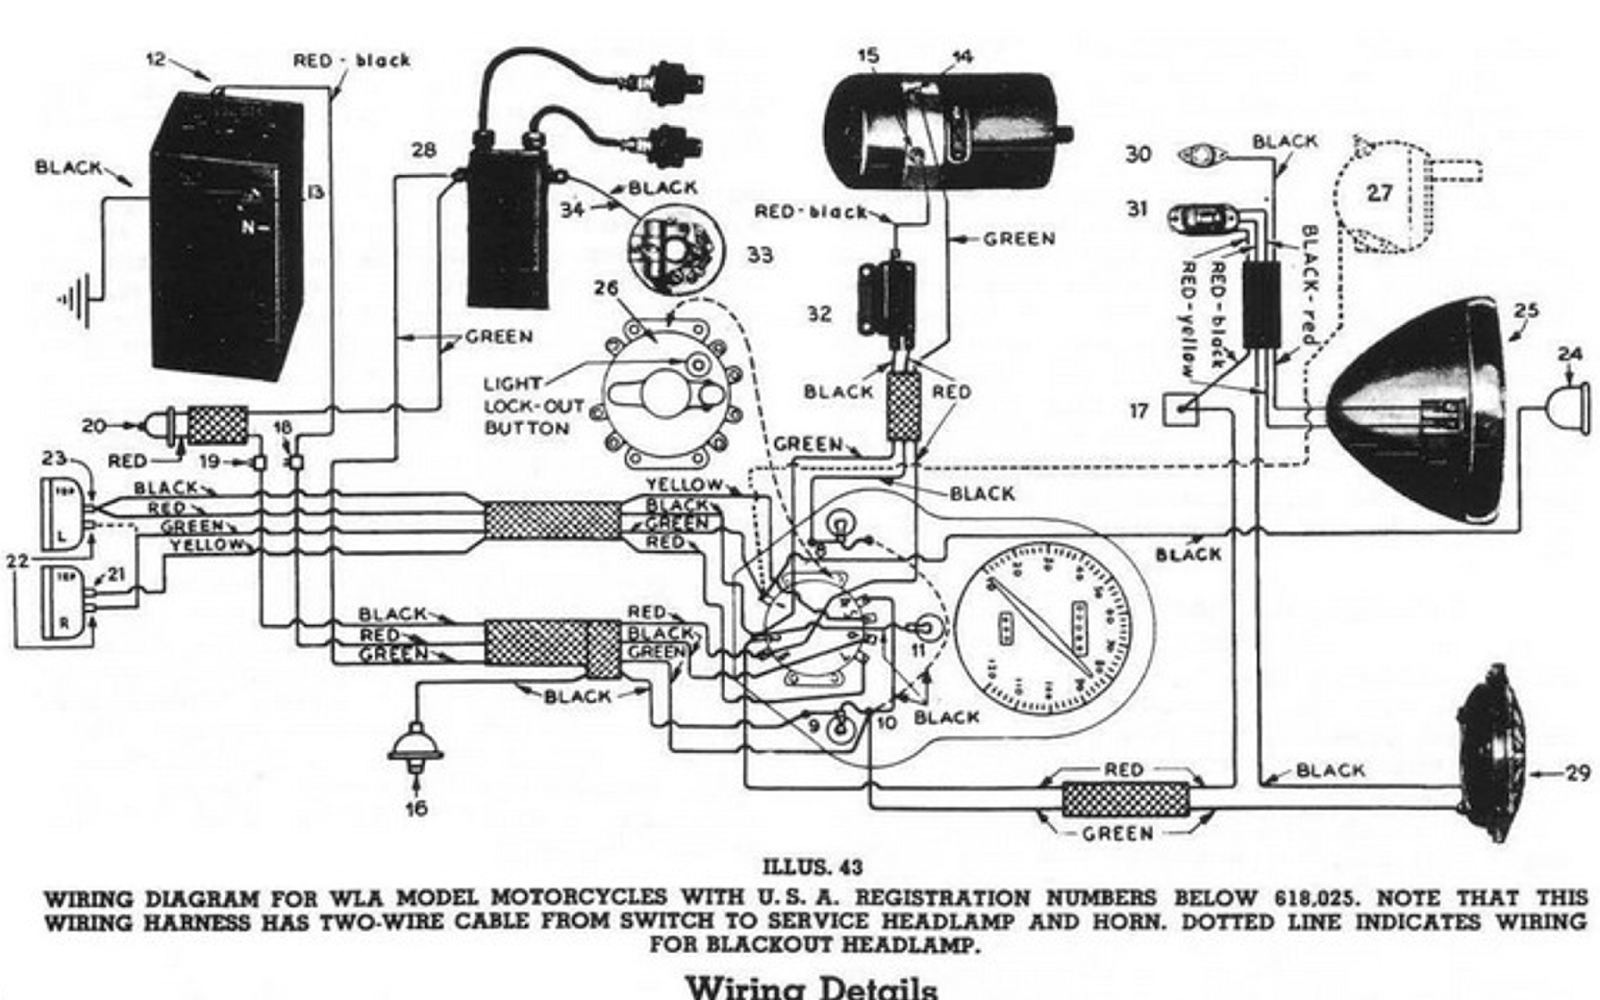 medium resolution of 1941 harley davidson wl restoration re wiring the harley davidson wl harley davidson softail wiring diagram harley switch diagram